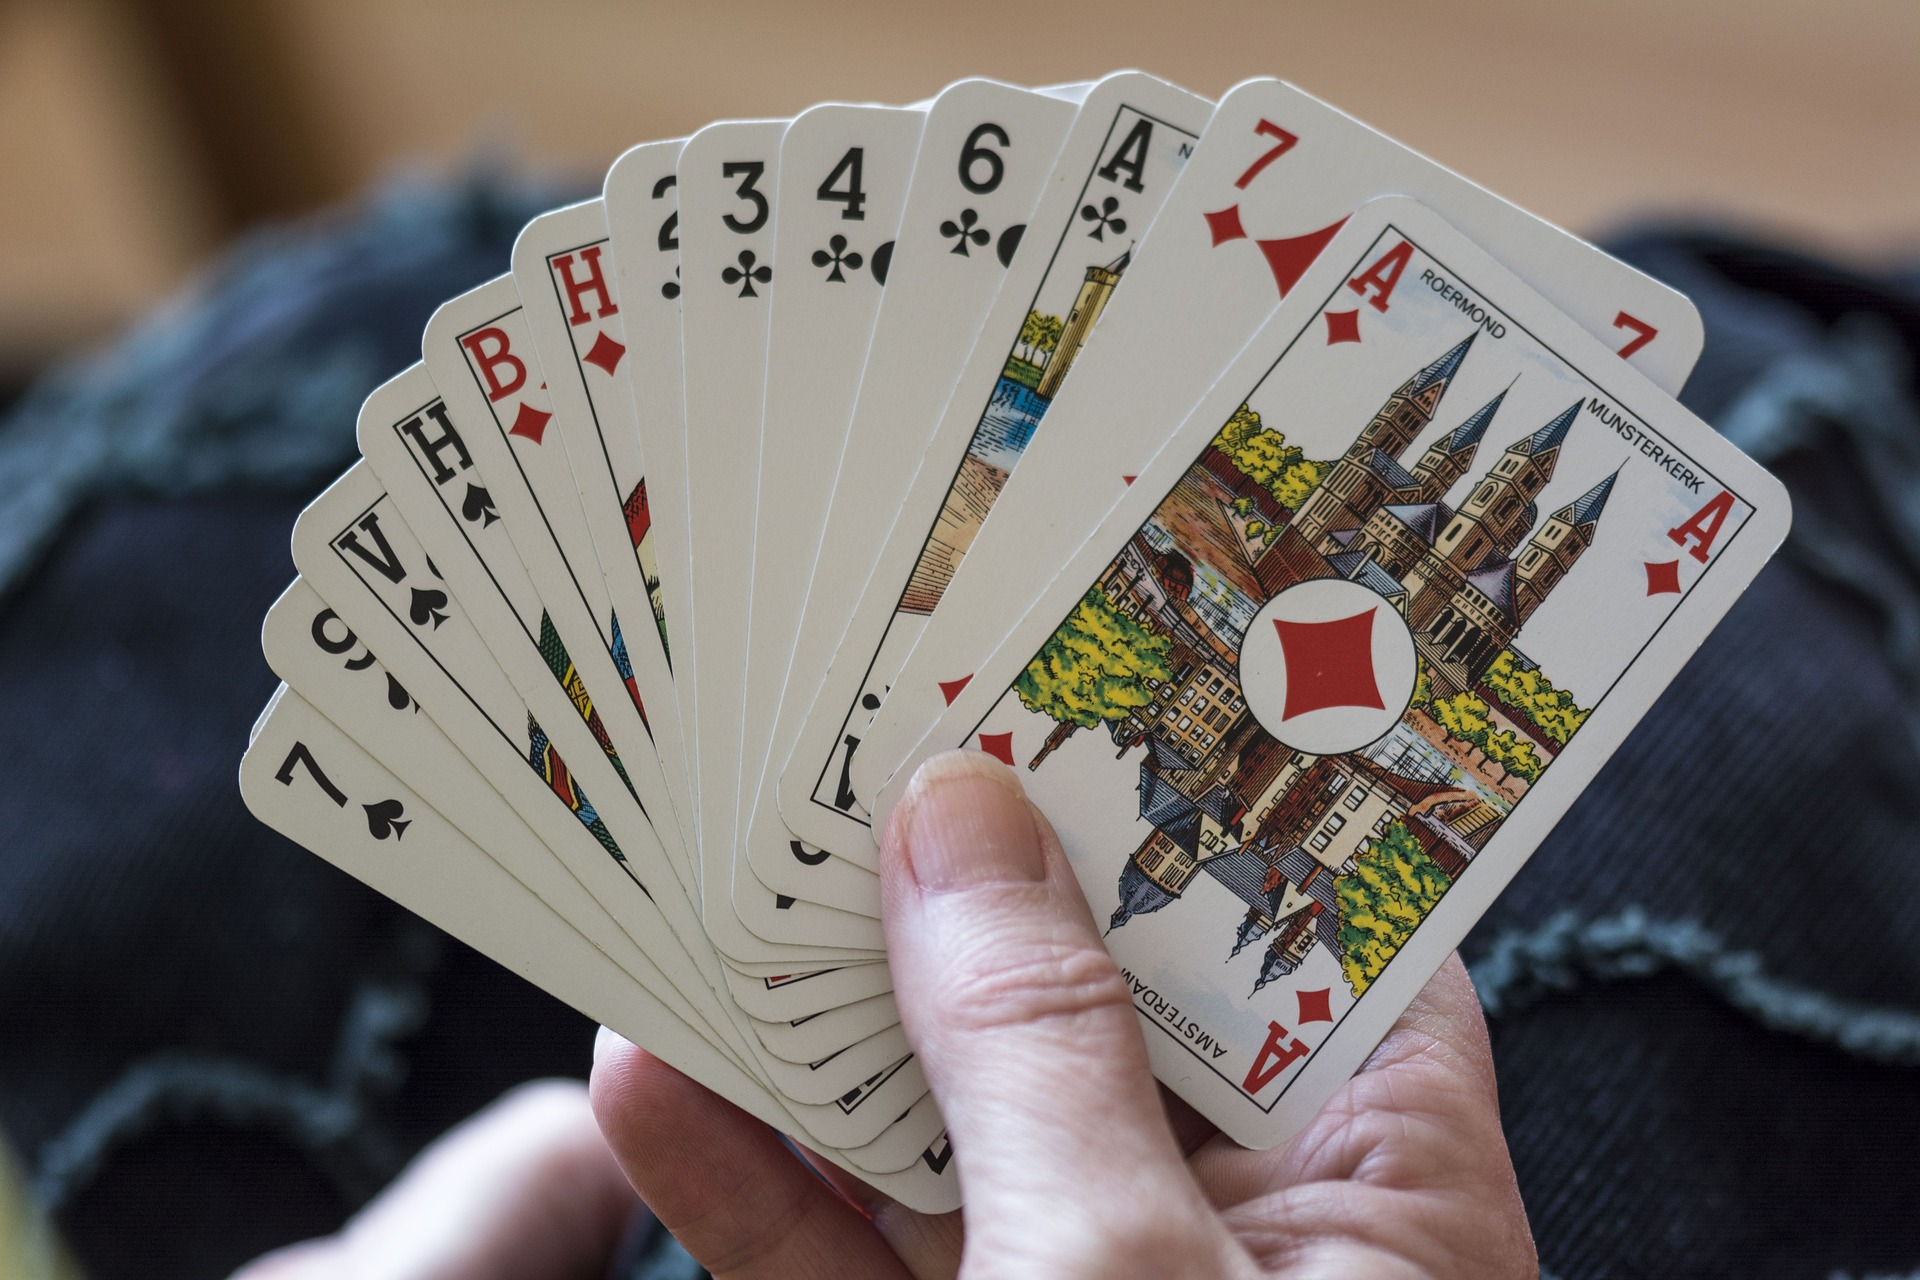 When playing cards becomes a gambling problem